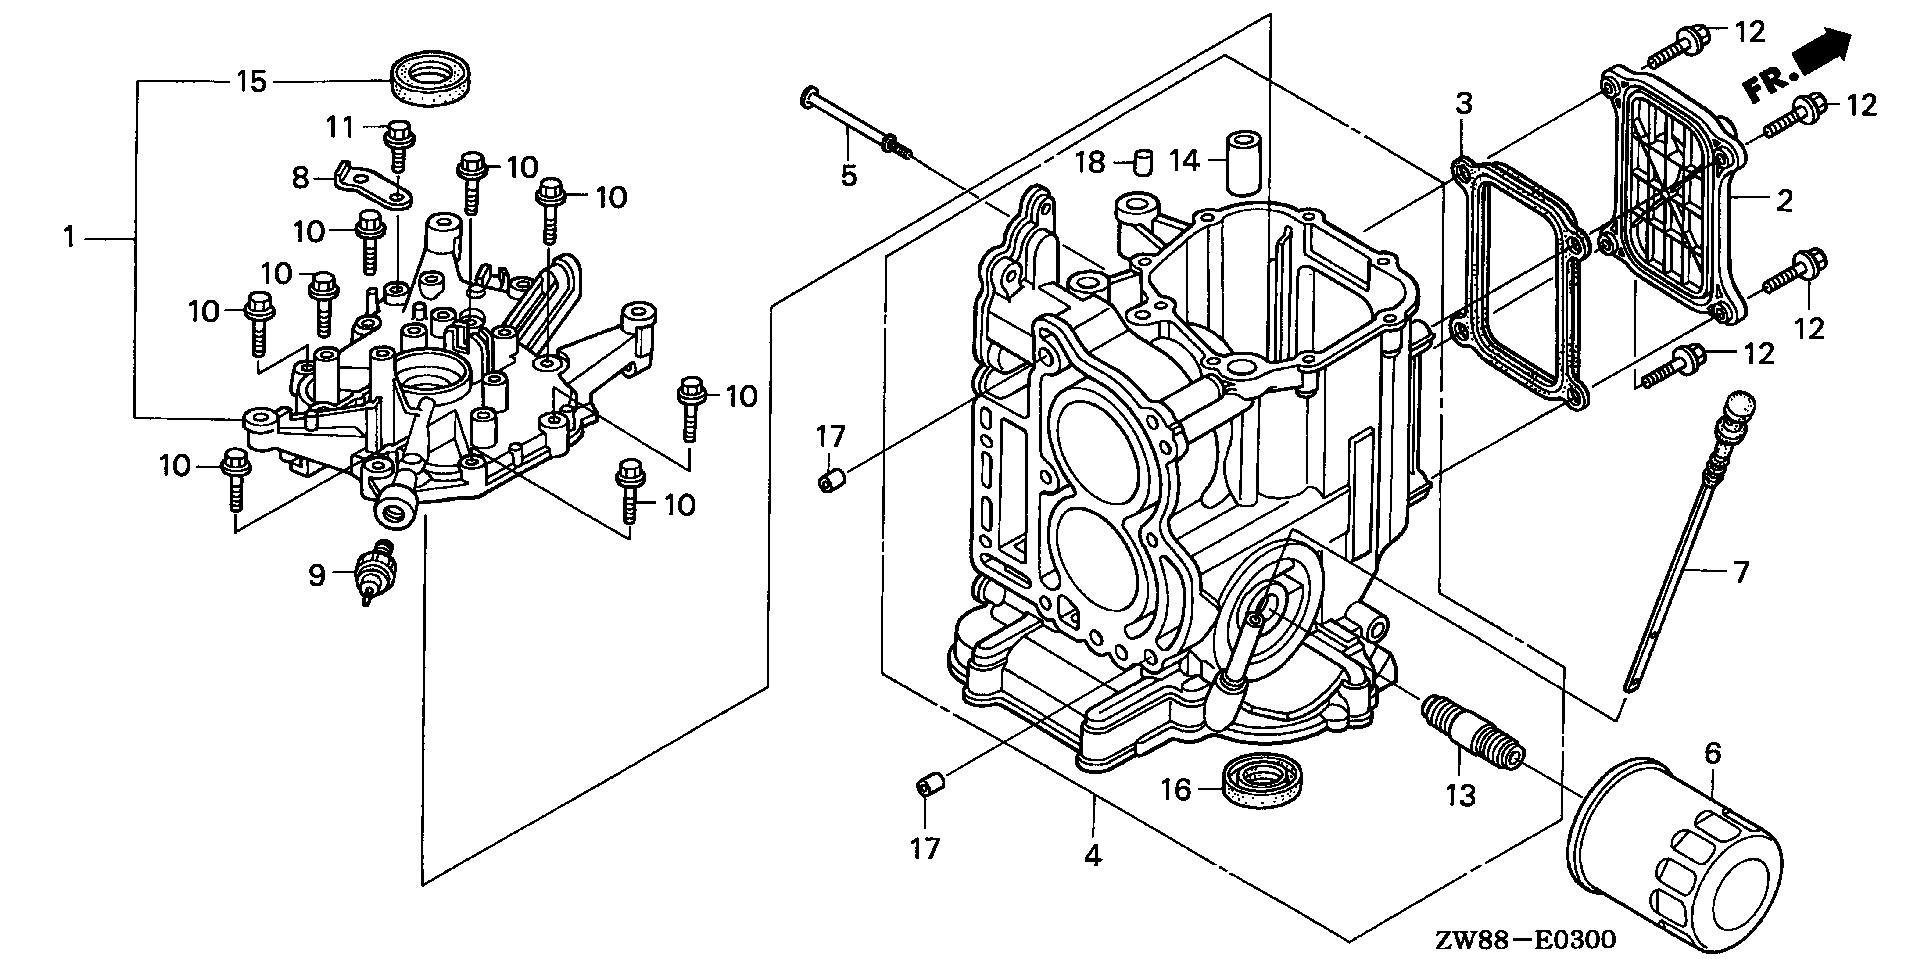 CYLINDER BLOCK@CRANKCASE COVER